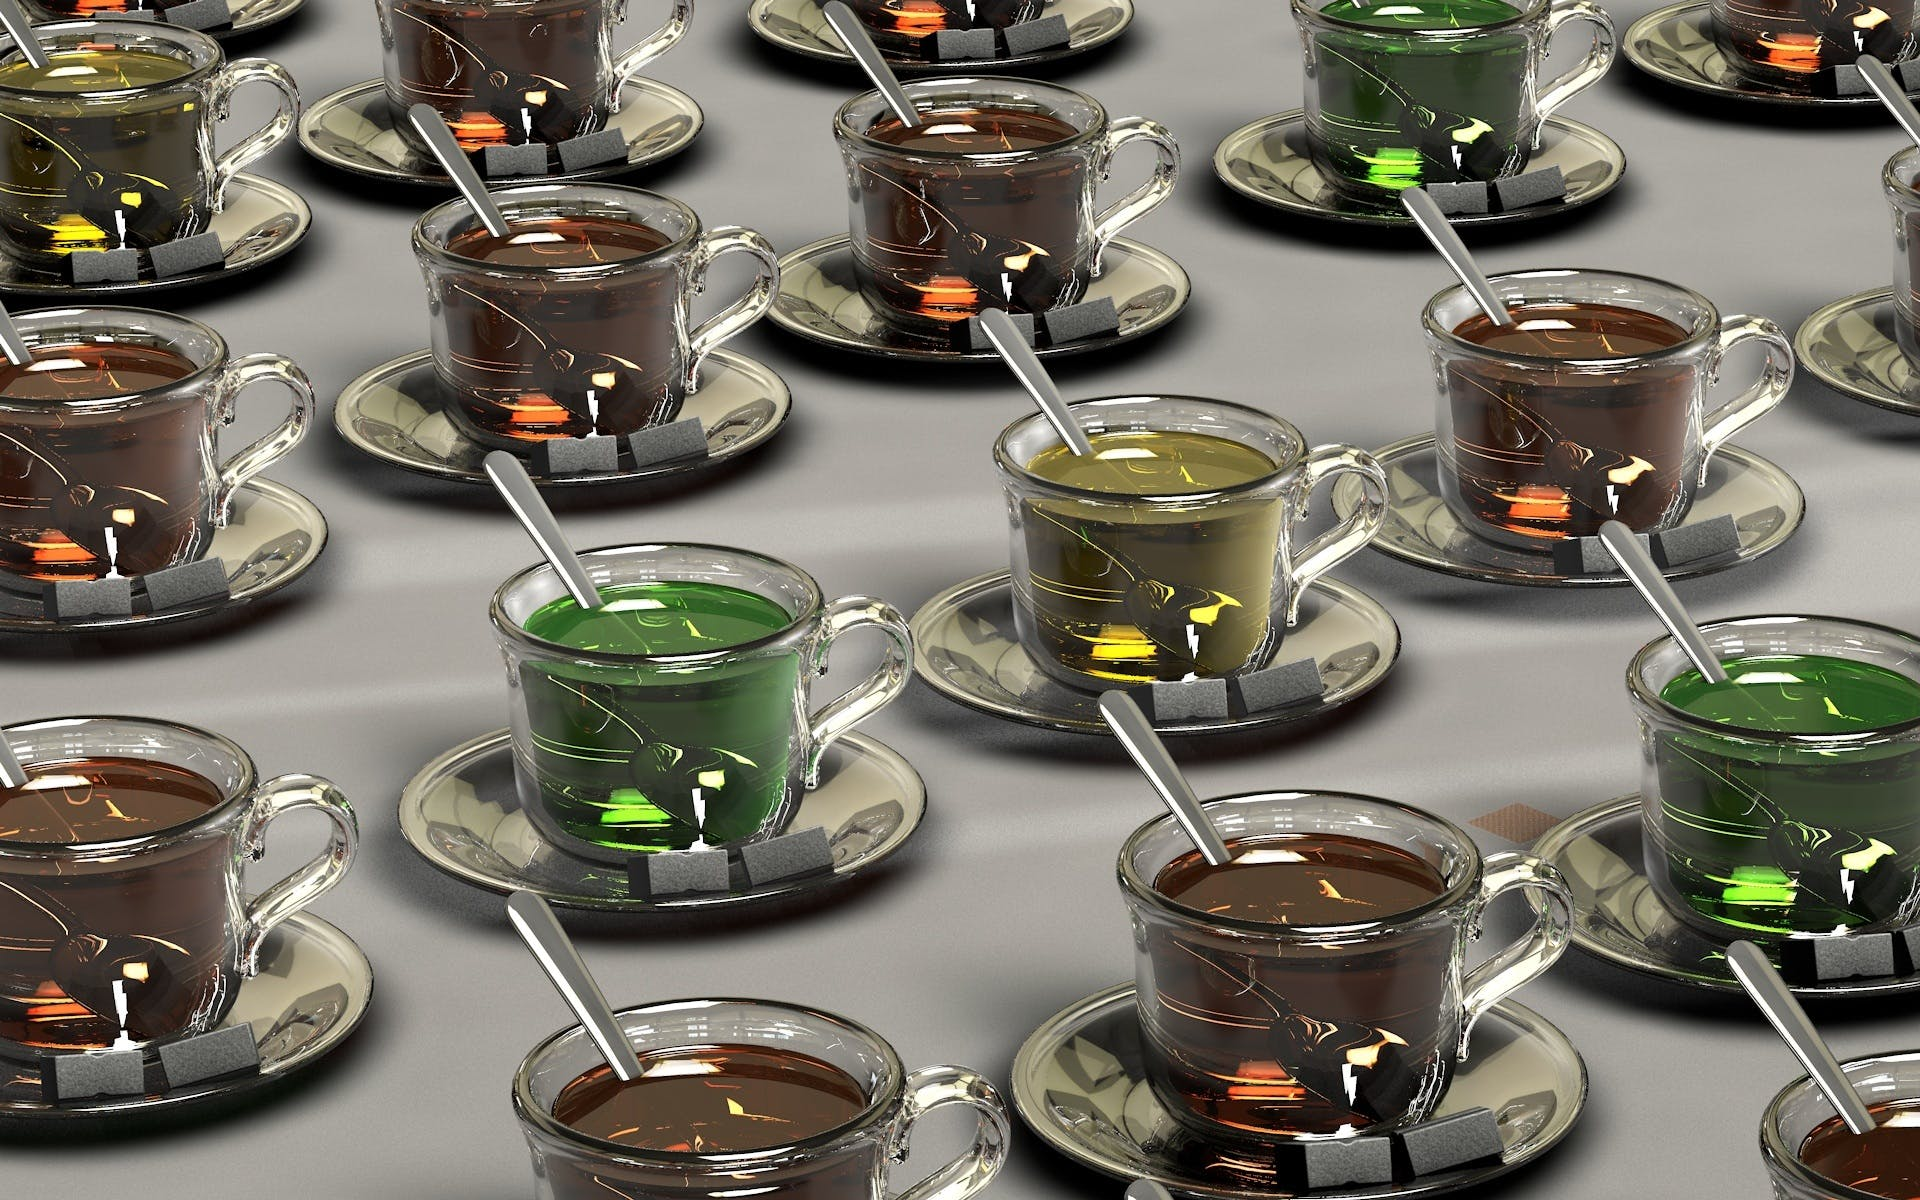 Clear Glass Teacup With Chocolate Drink